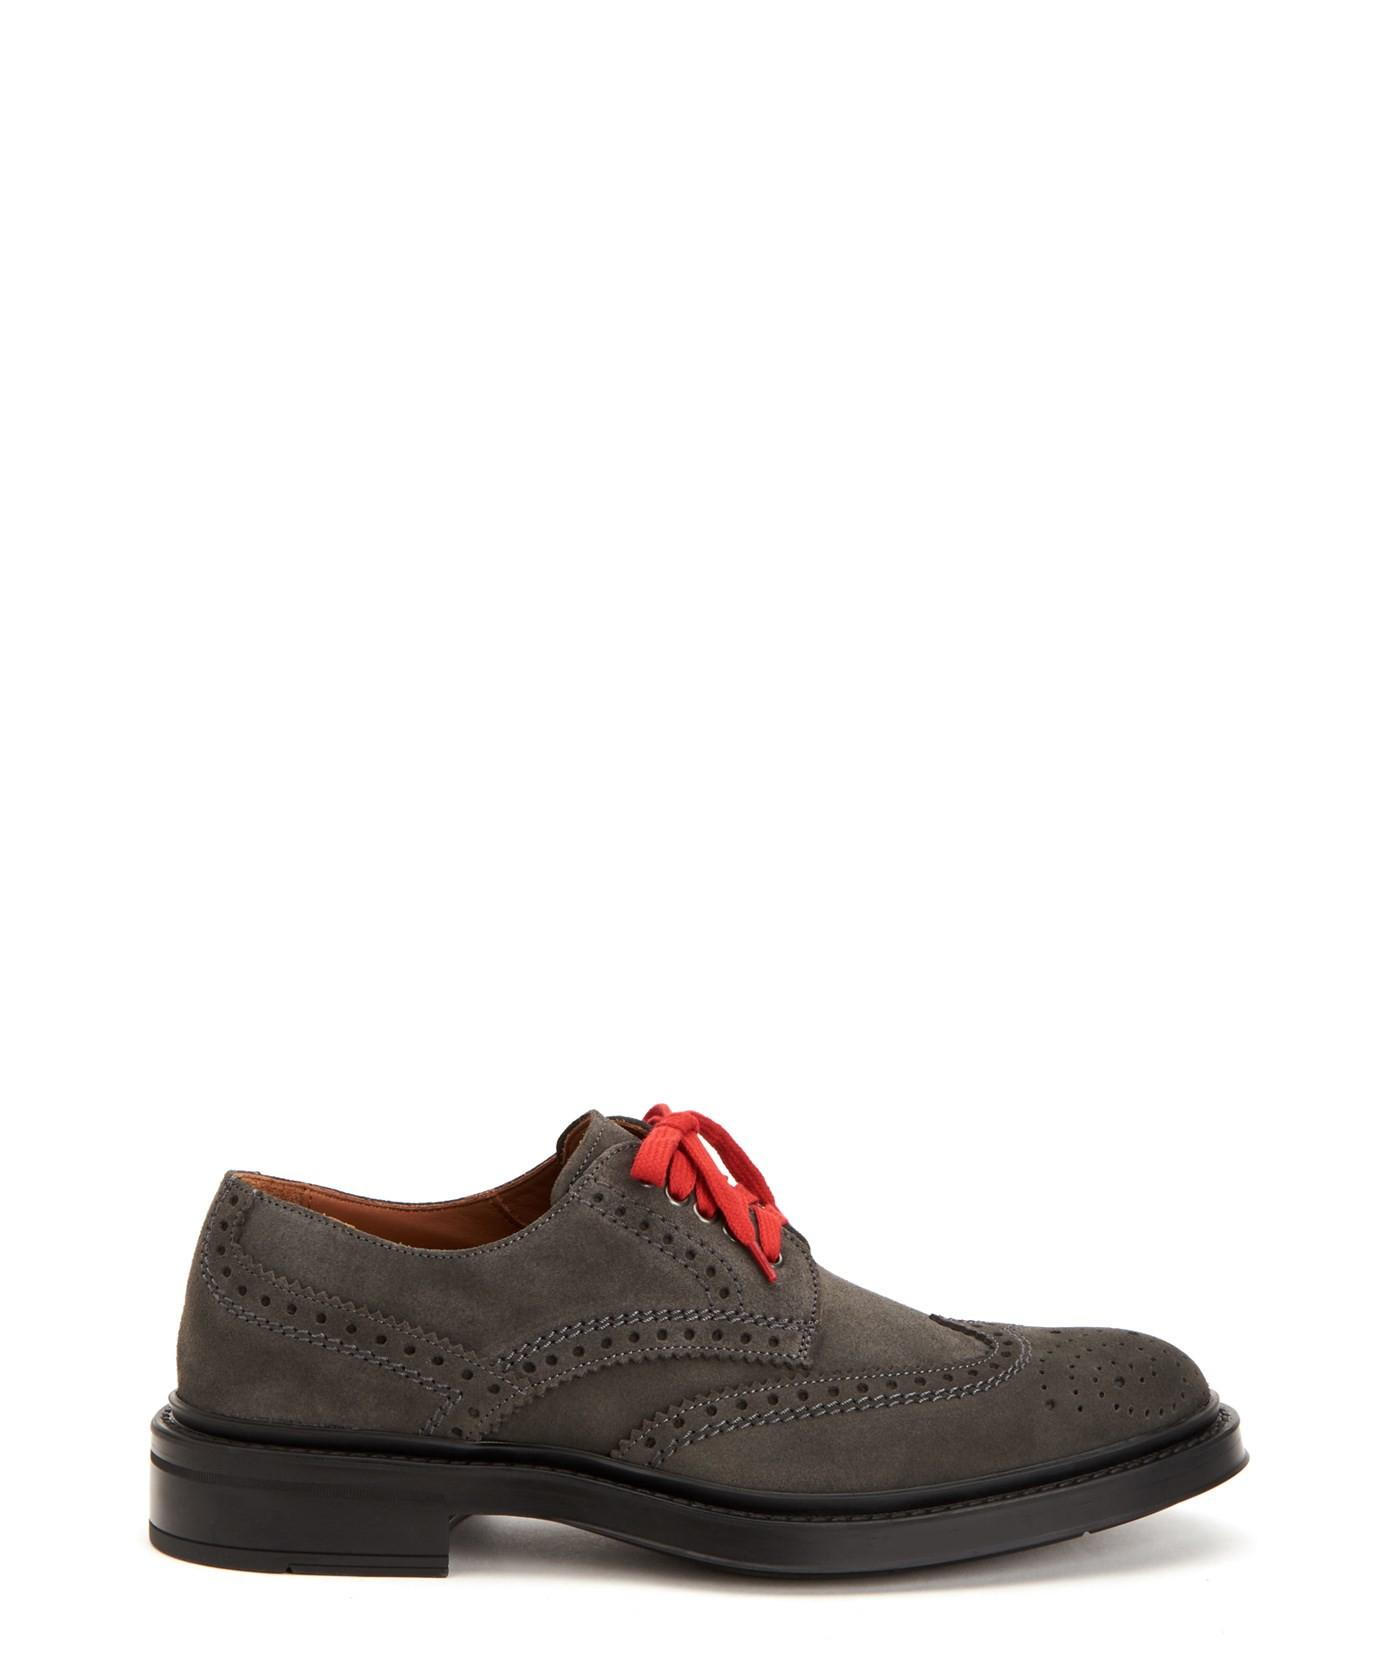 Aquatalia Landon Waterproof Leather Oxford In Nocolor